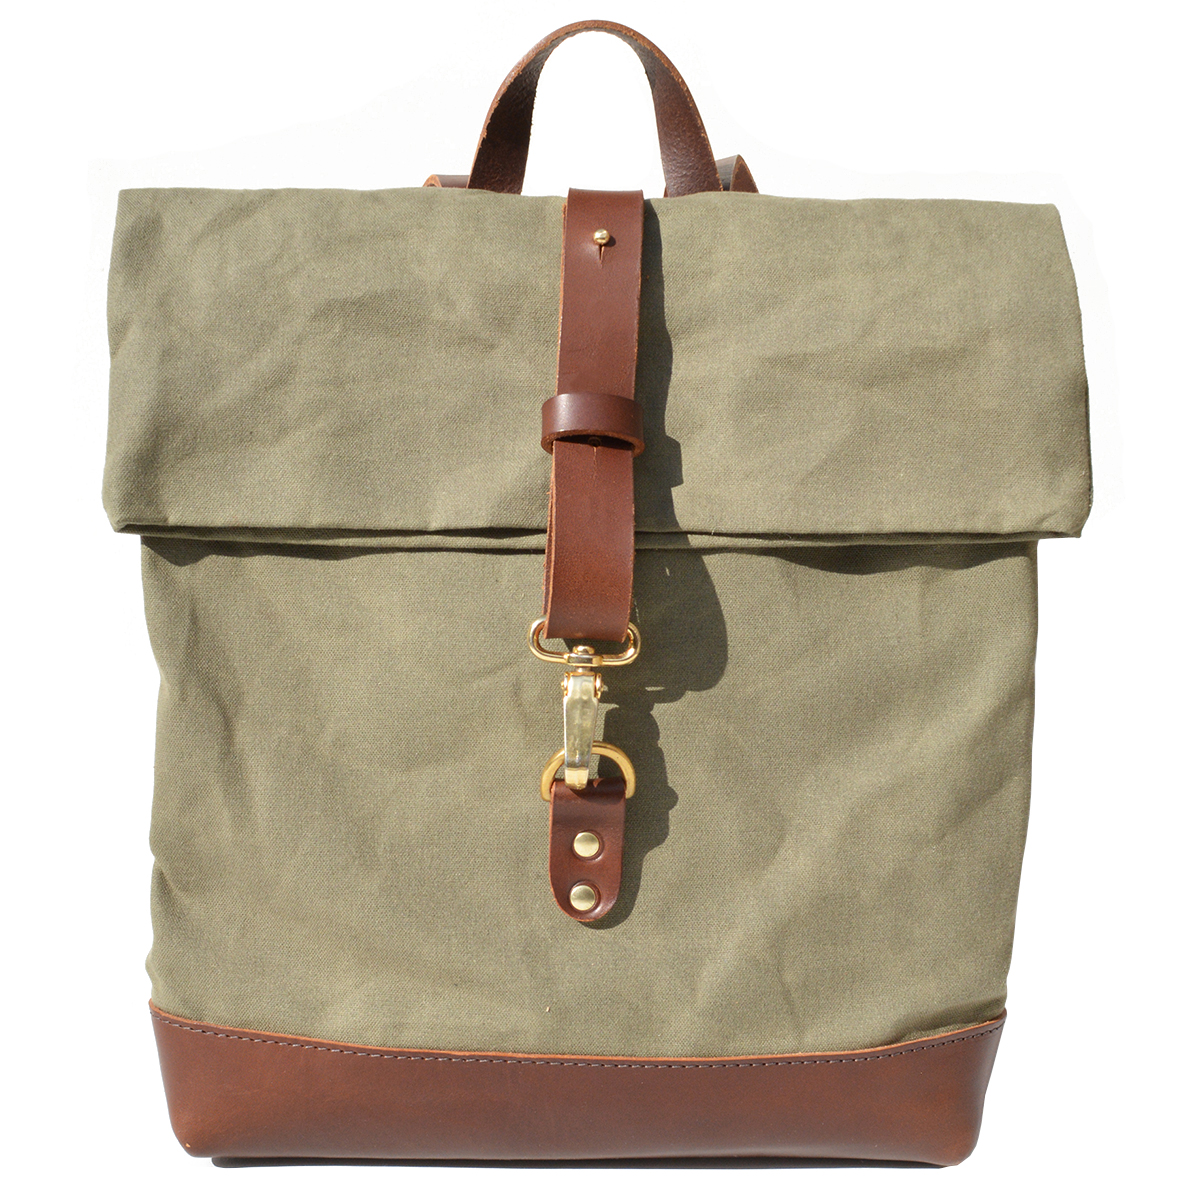 Olive canvas backpack by Natthakur